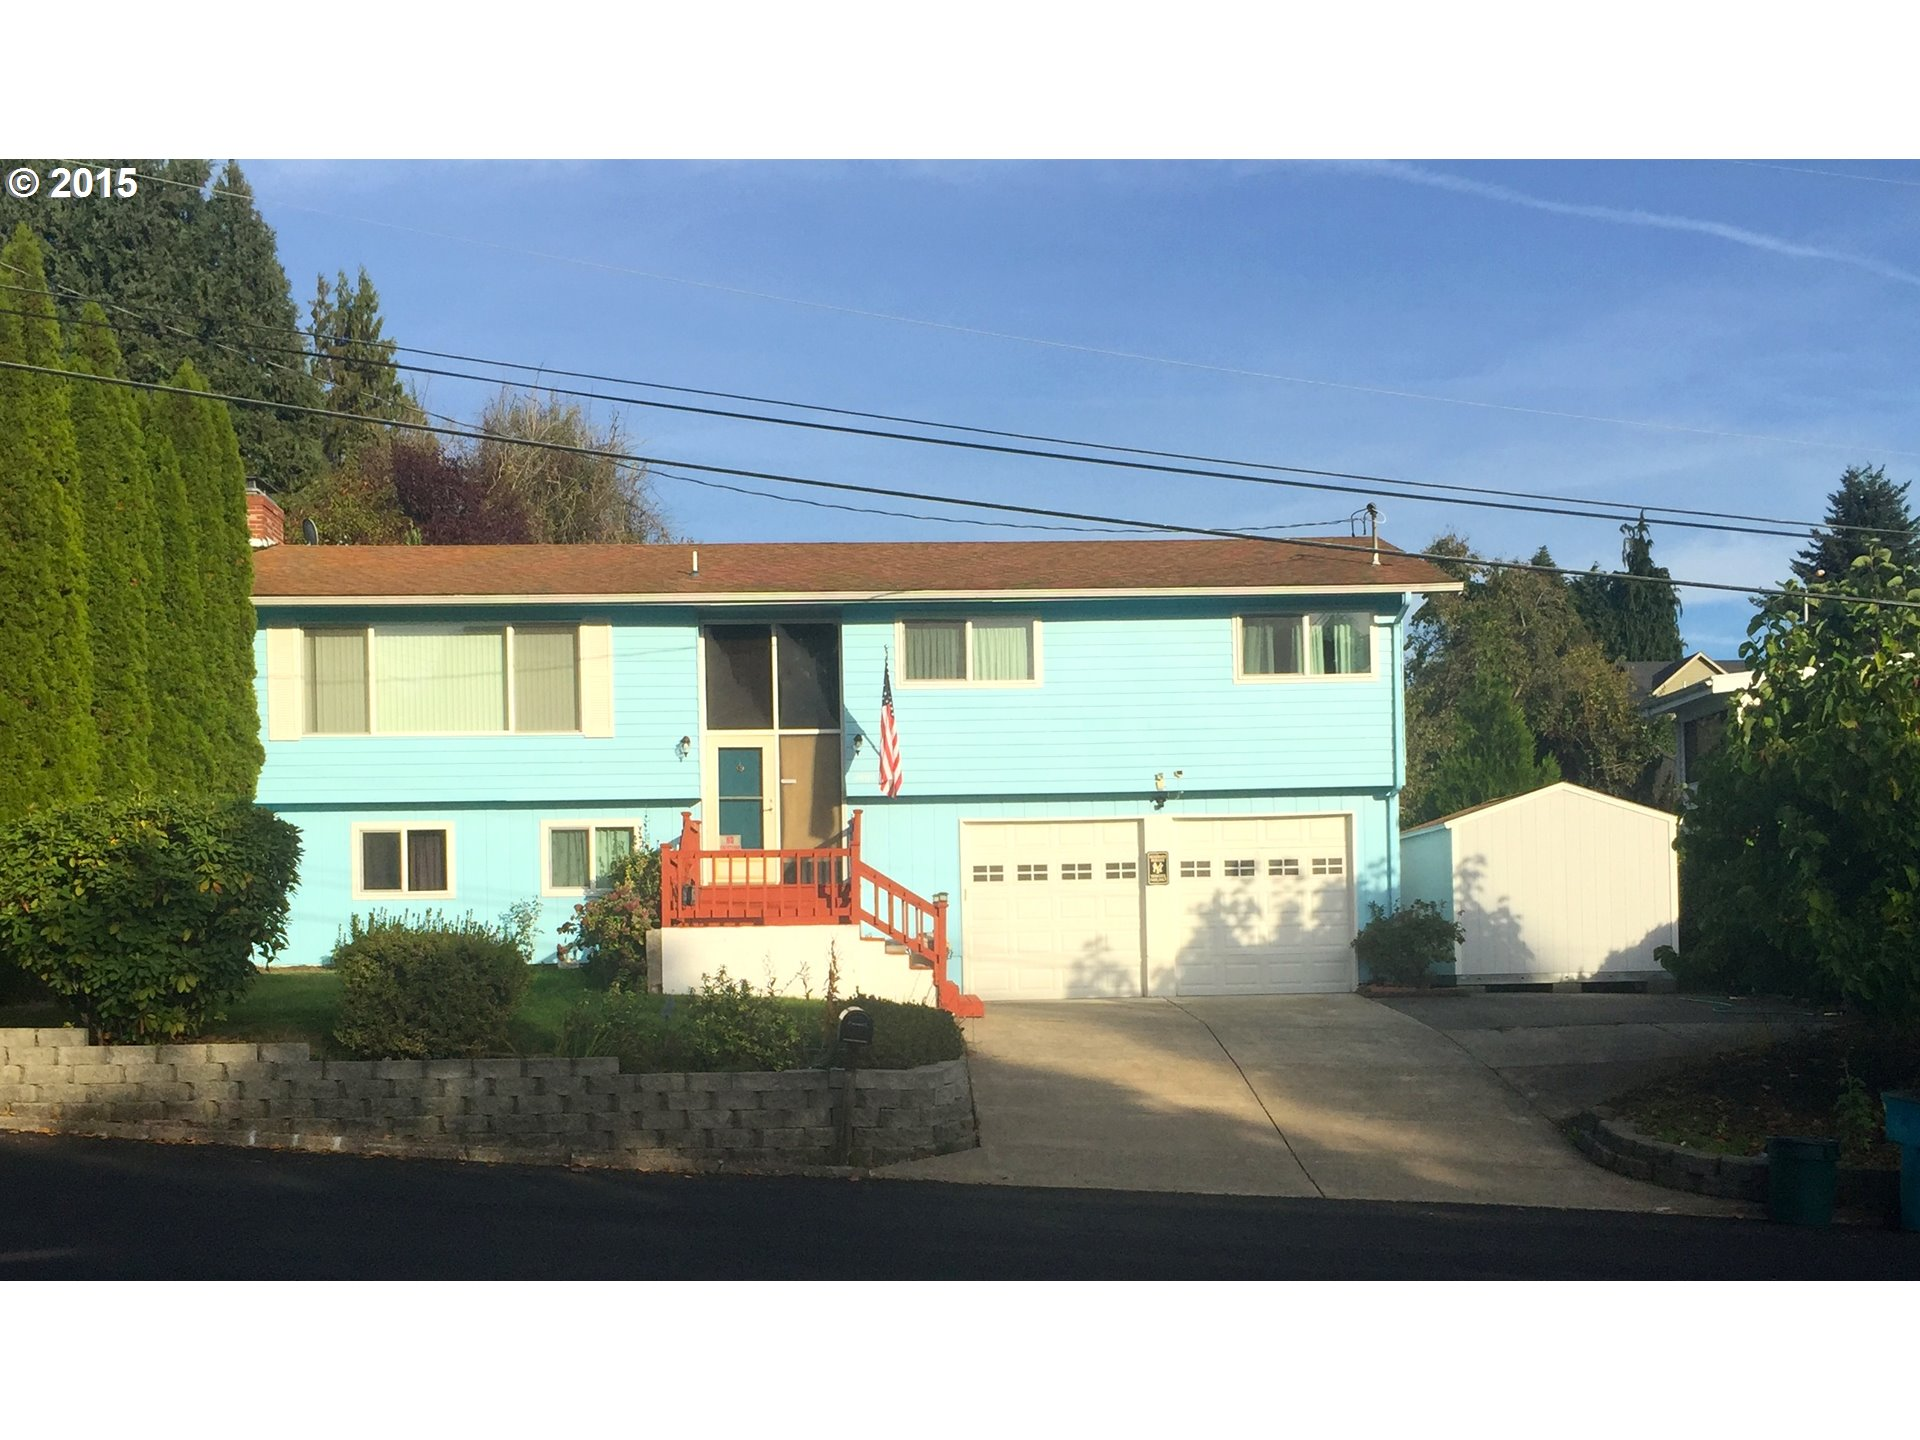 7405 NW 3rd Ave, Vancouver, WA